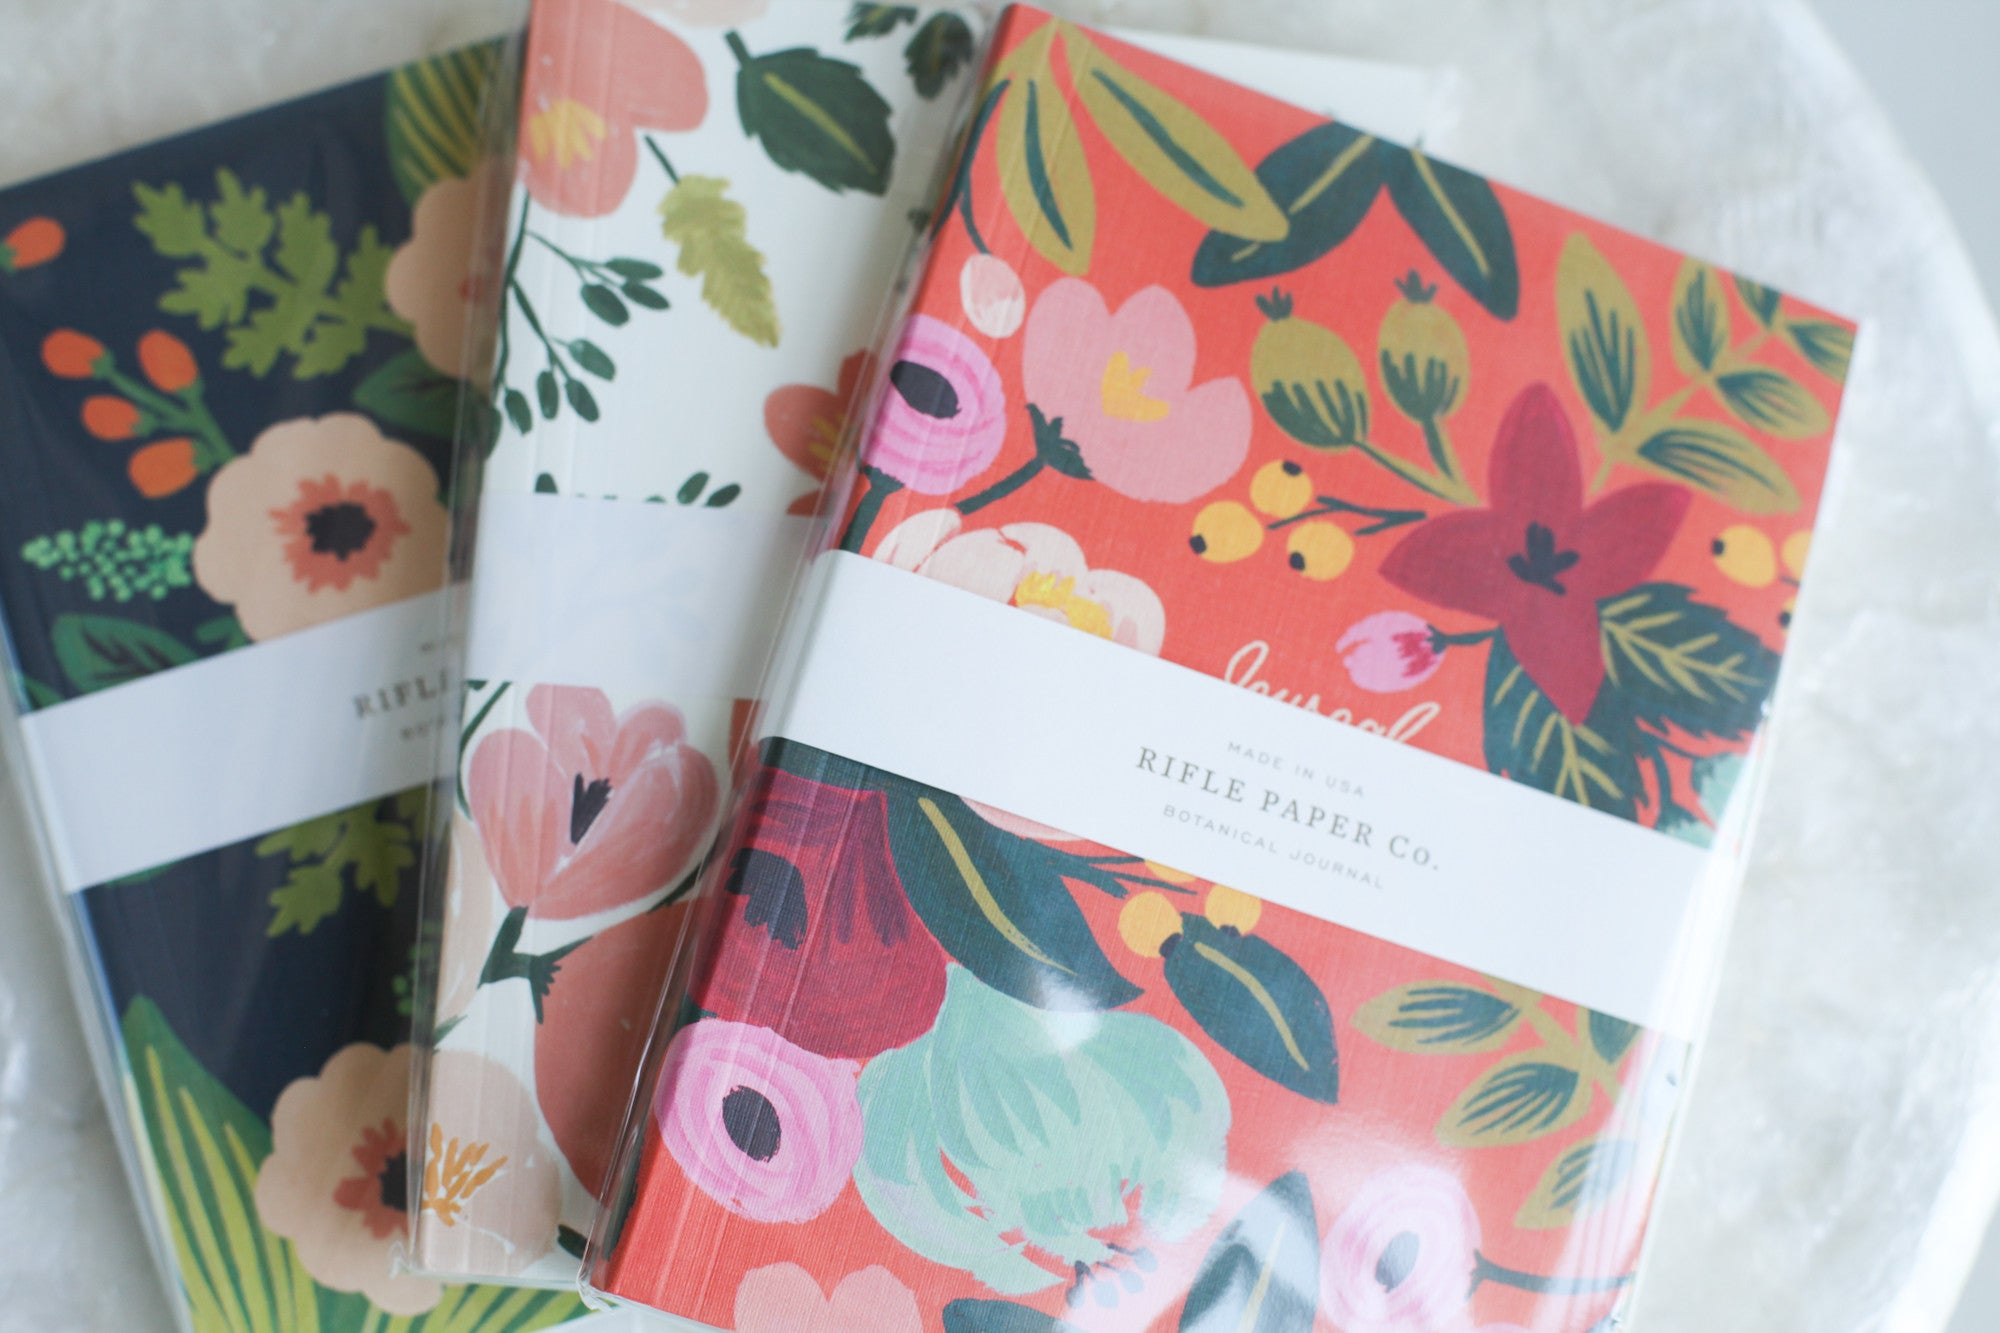 Rifle Paper Co. Evelina Everyday Journal